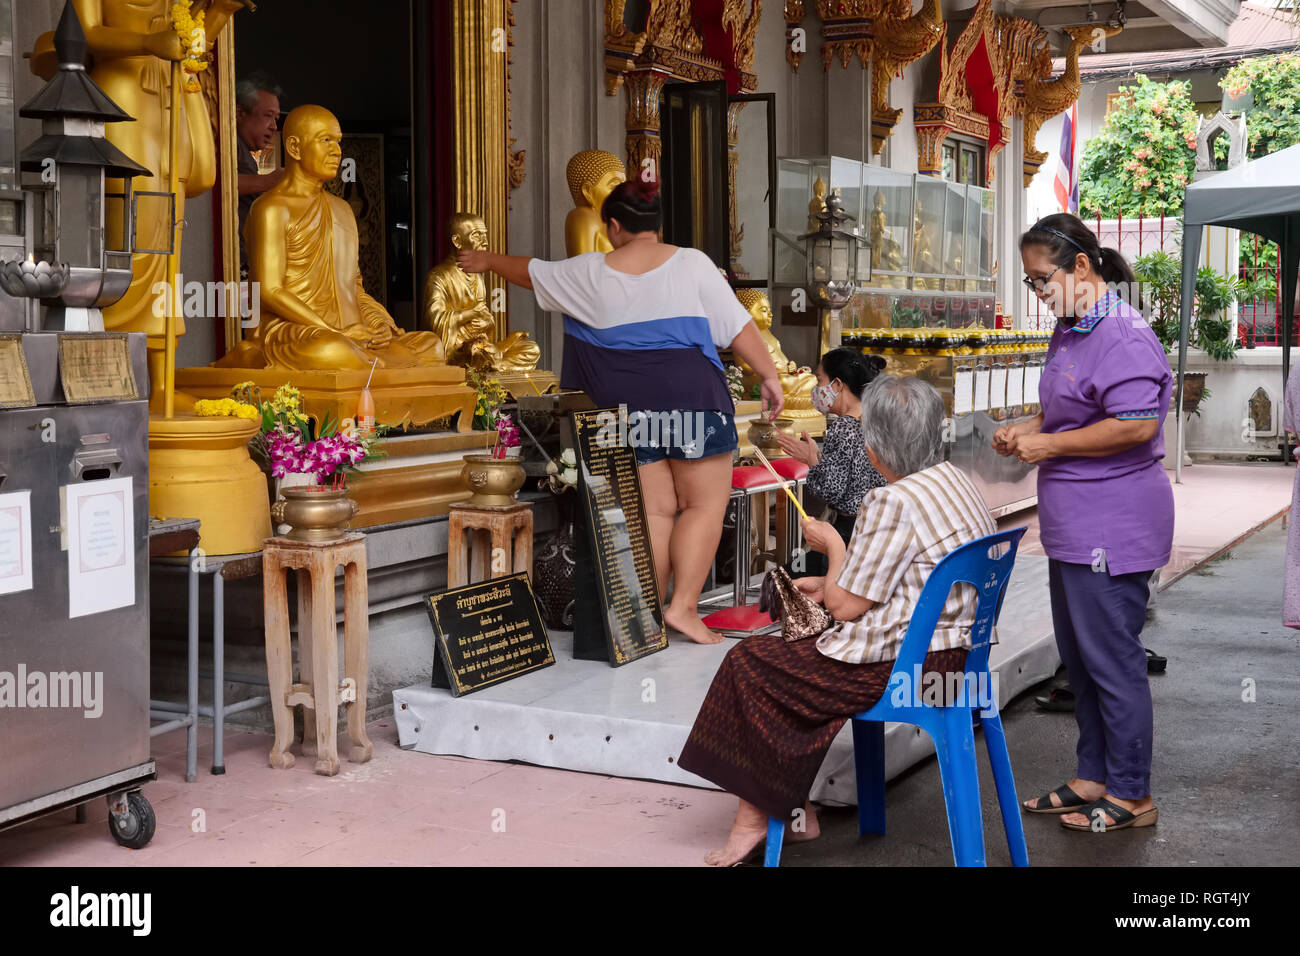 Worshippers at Wat Mai Amatarot, Bangkok, Samsen Road, Thailand, praying at a shrine with statues of the Buddha and revered monks - Stock Image